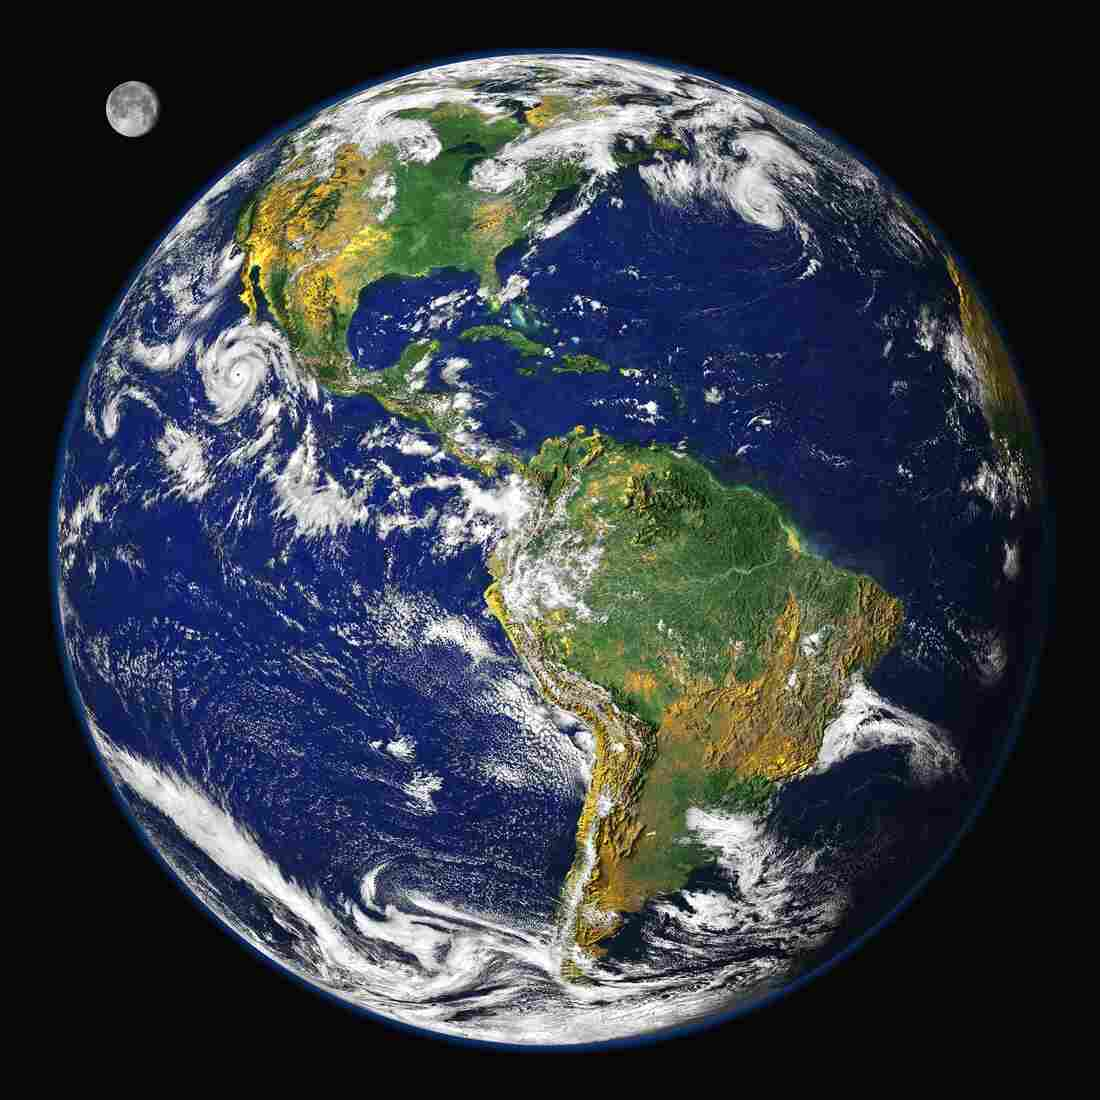 Is The Earth Alive? That Depends On Your Definition Of Life